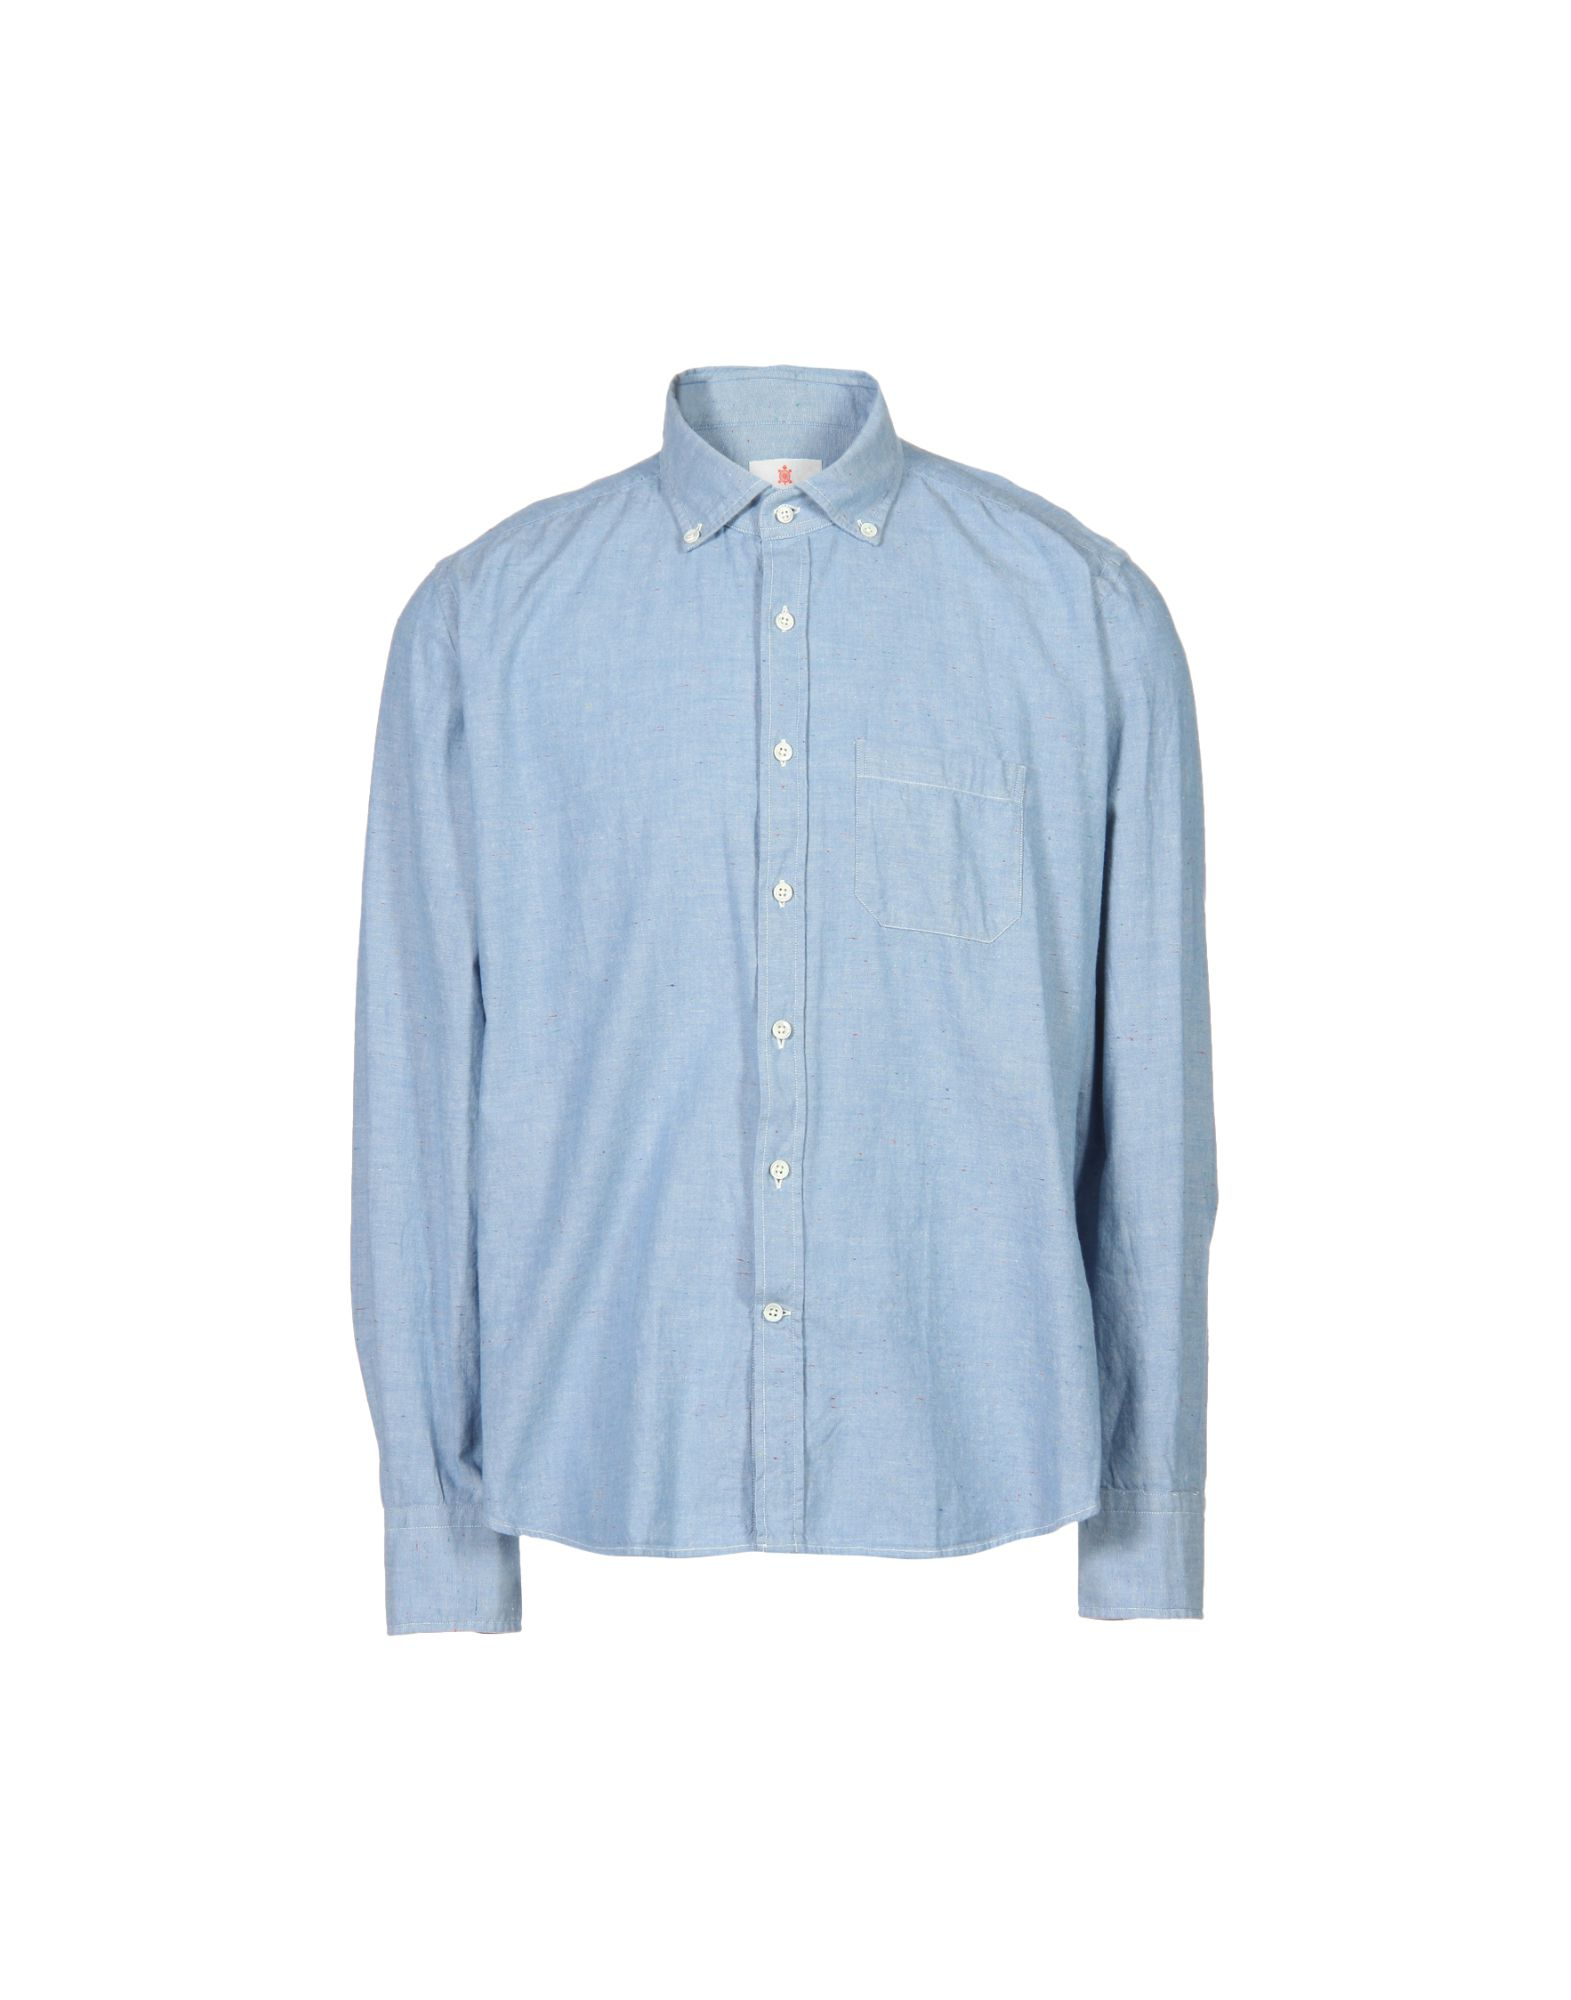 SLOWEAR Solid Color Shirt in Blue